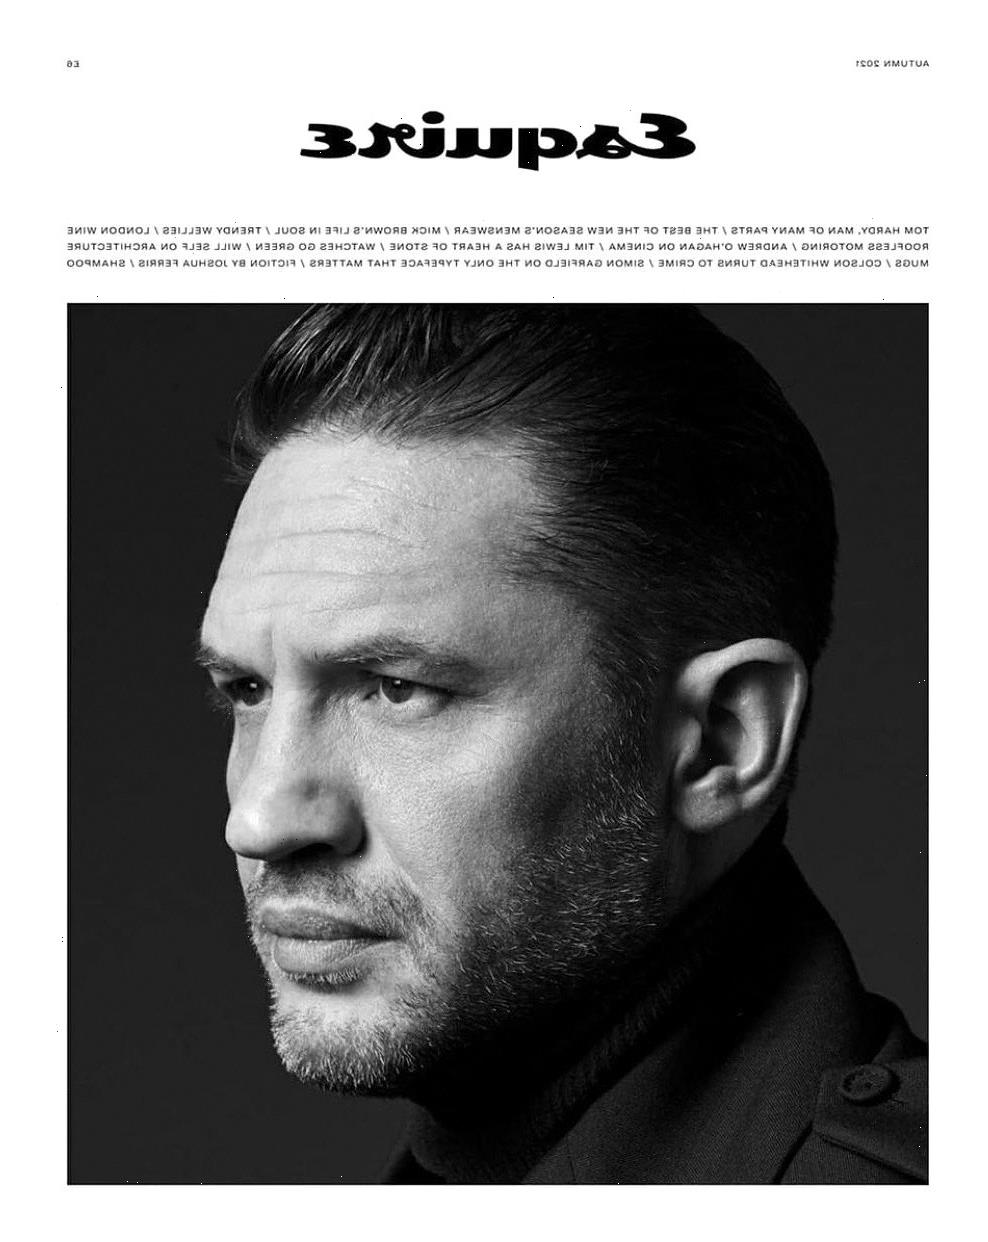 Tom Hardy fantasized about opening up a sourdough cafe during lockdown